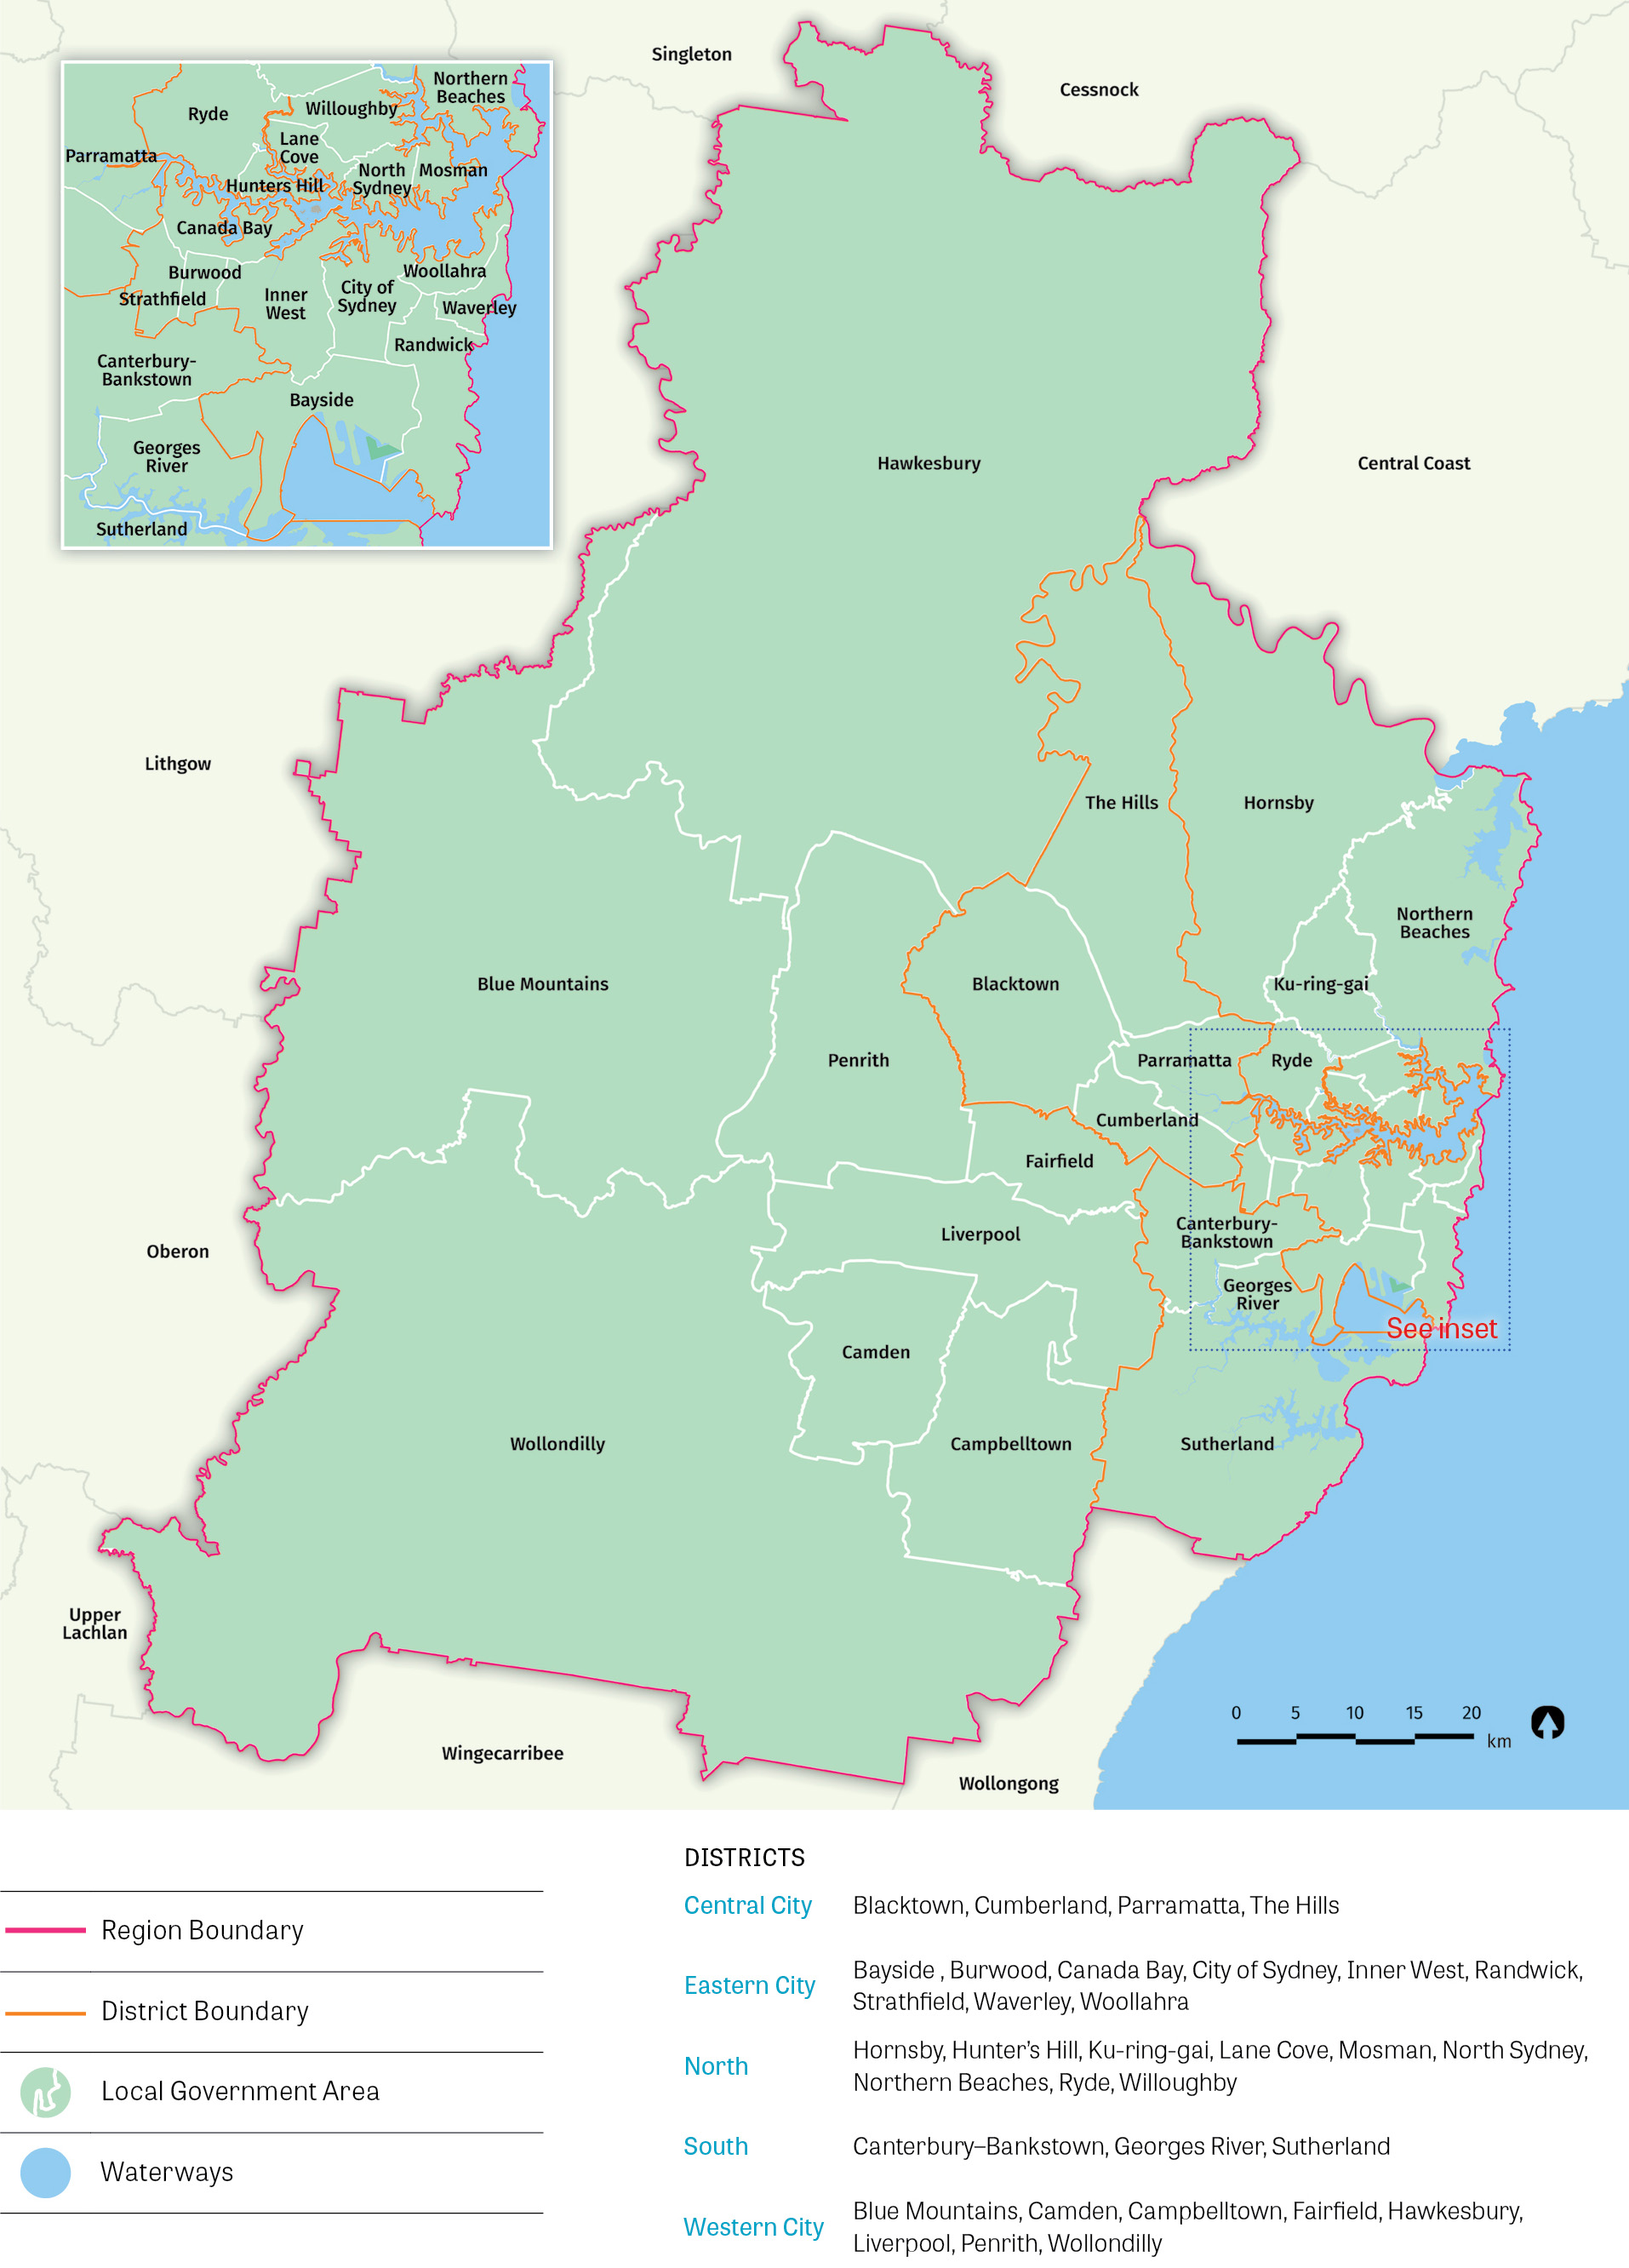 Map of the local government areas that comprise Greater Sydney.